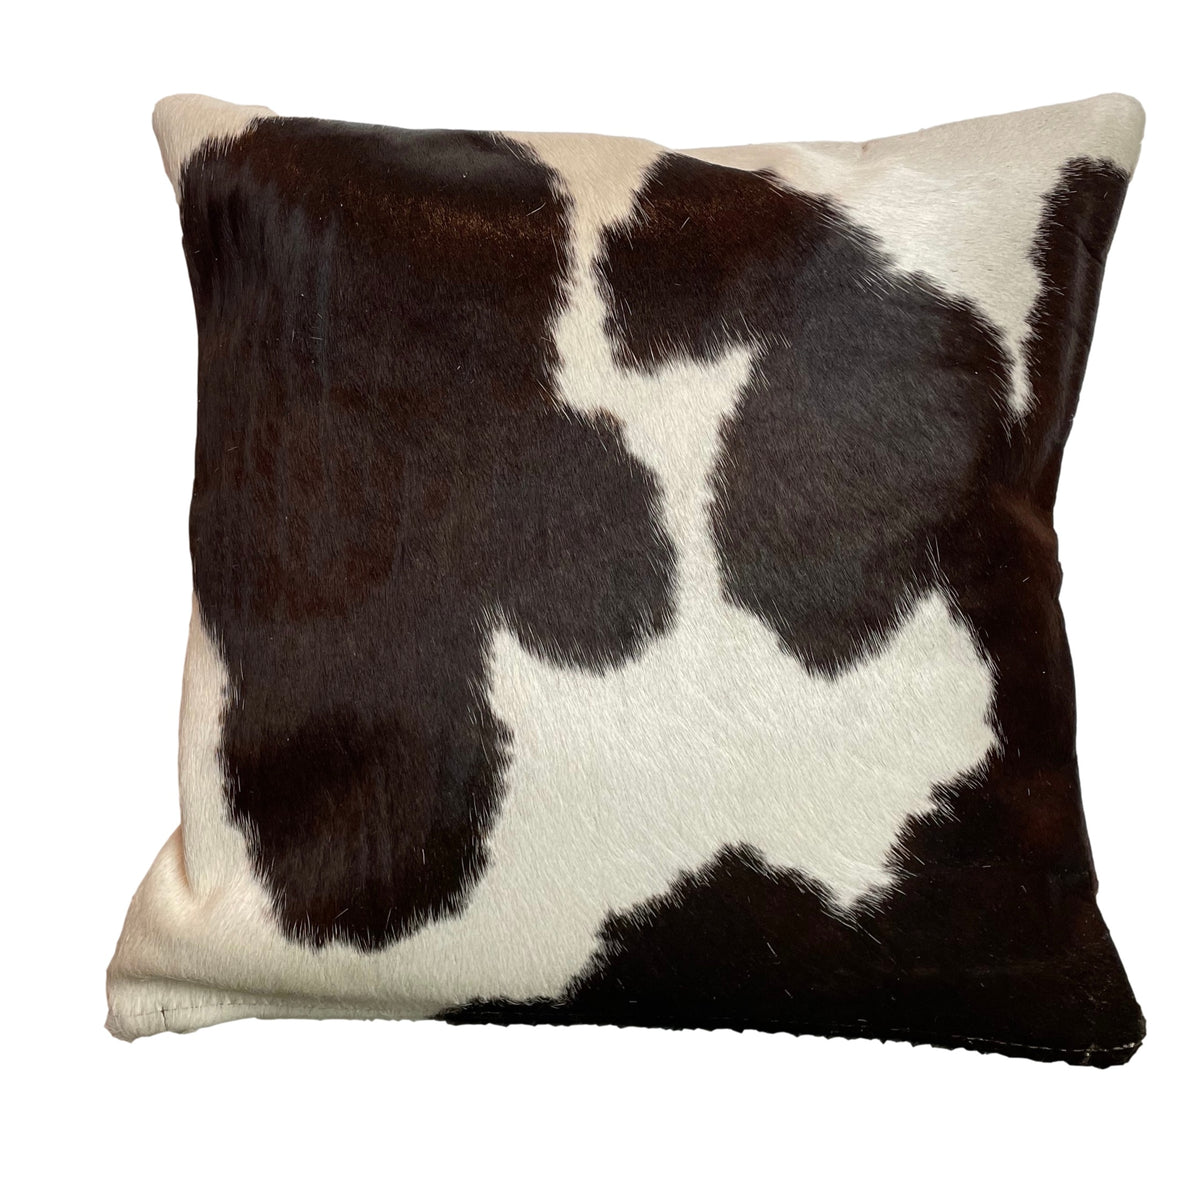 TRICOLOUR COWHIDE CUSHION - IZEL DESIGNS